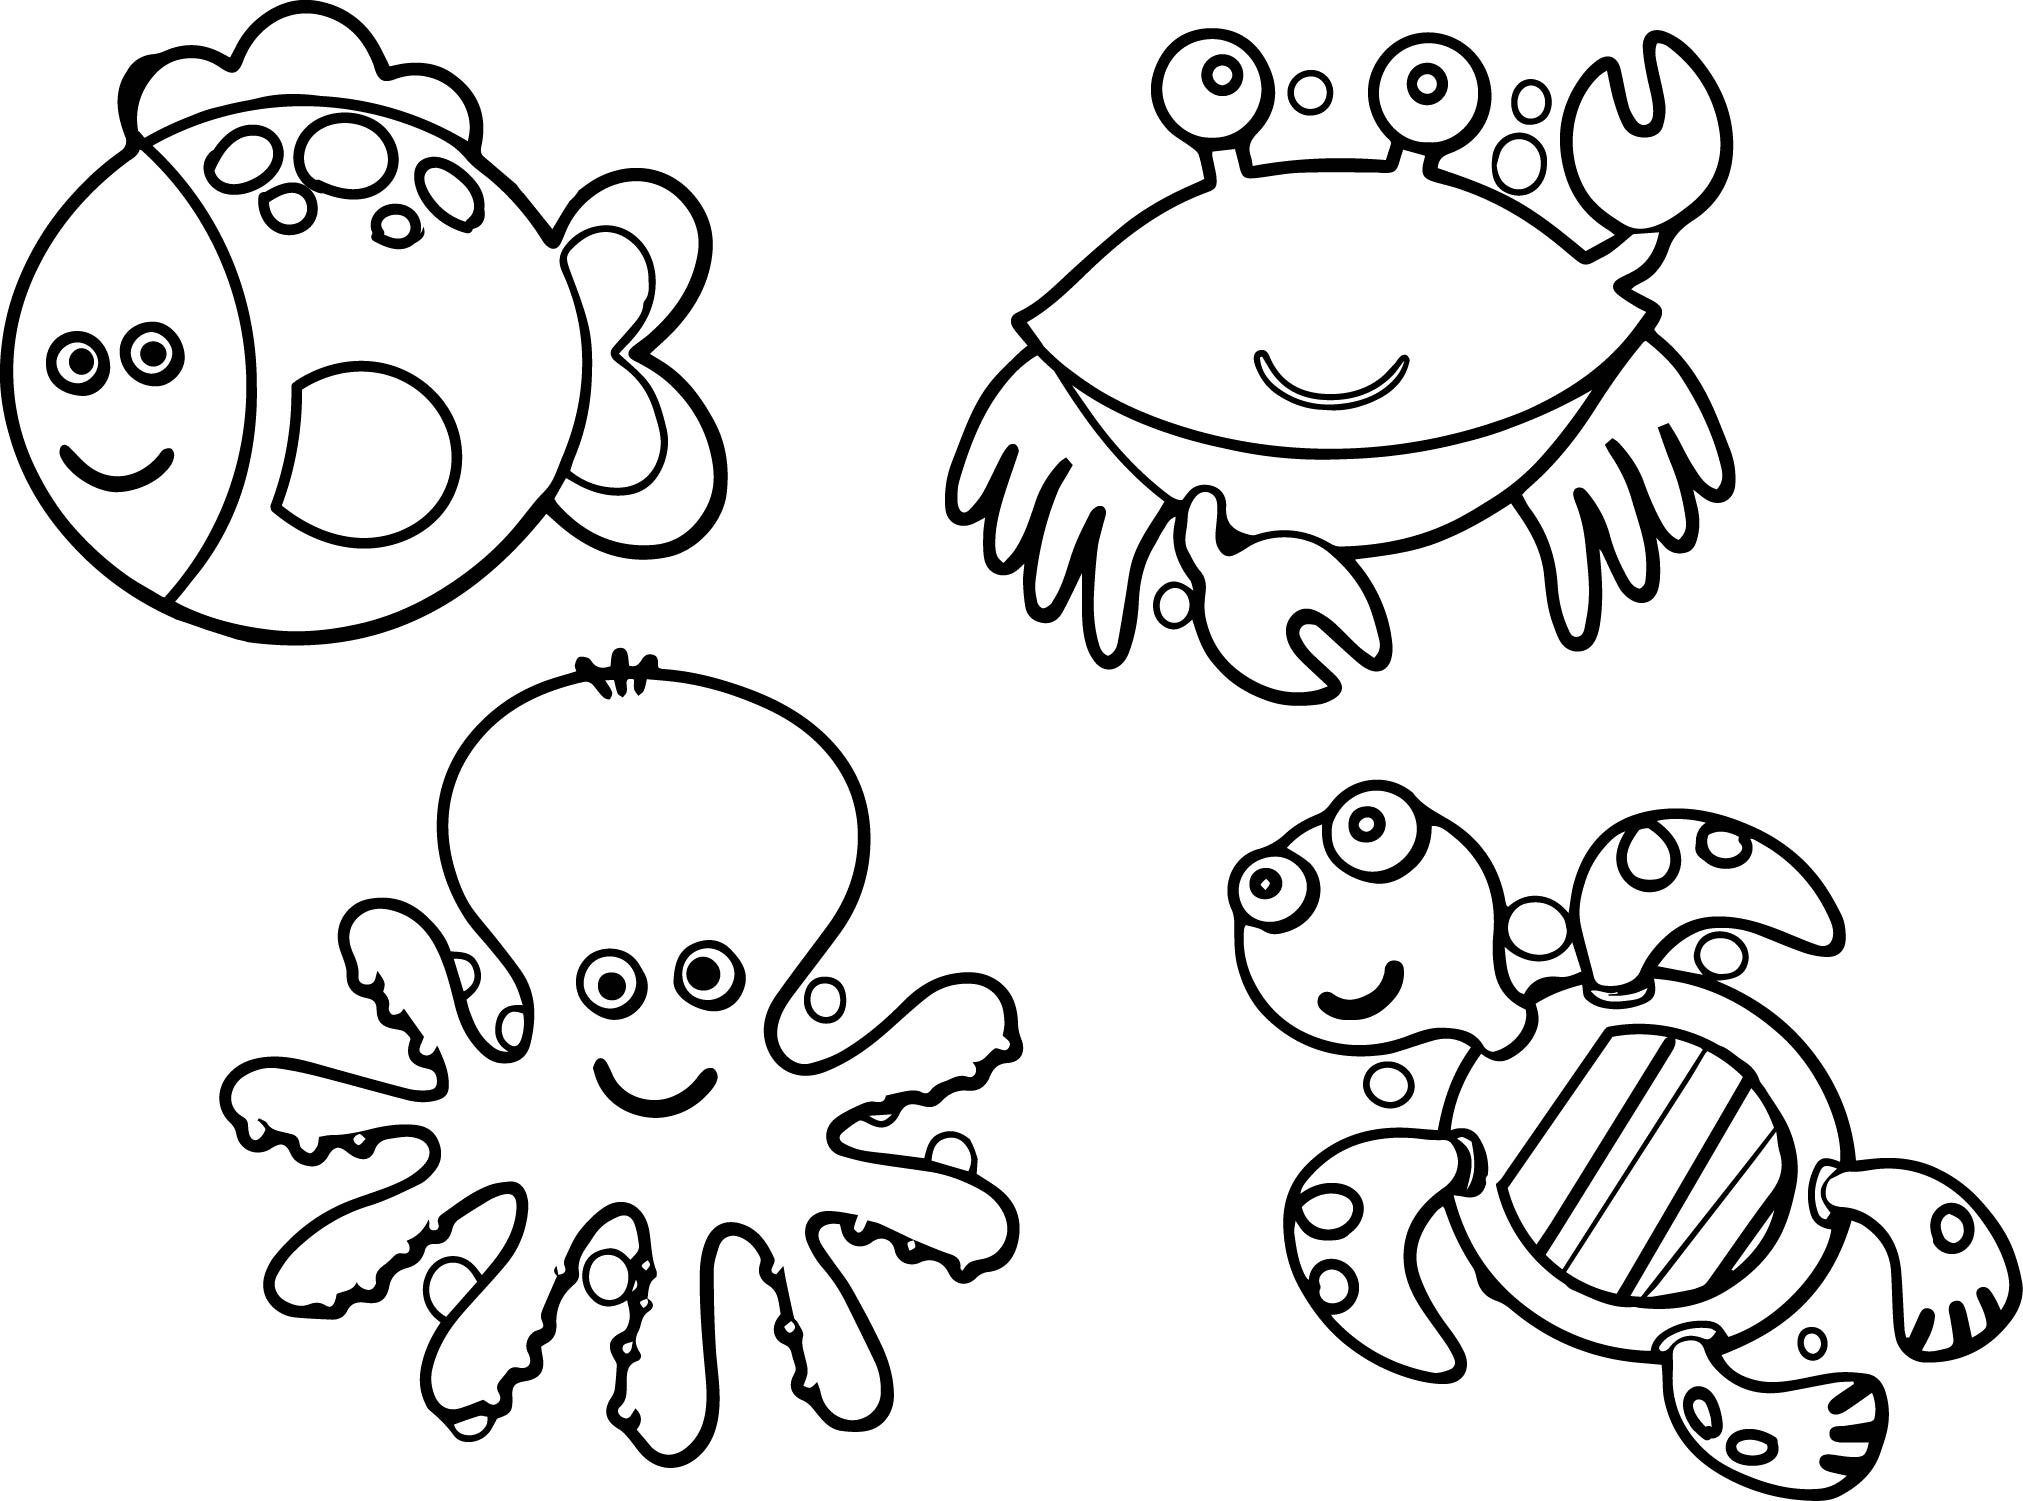 2023x1501 Greatest Sea Animal Printables Coloring Pages Free Printable Ocean